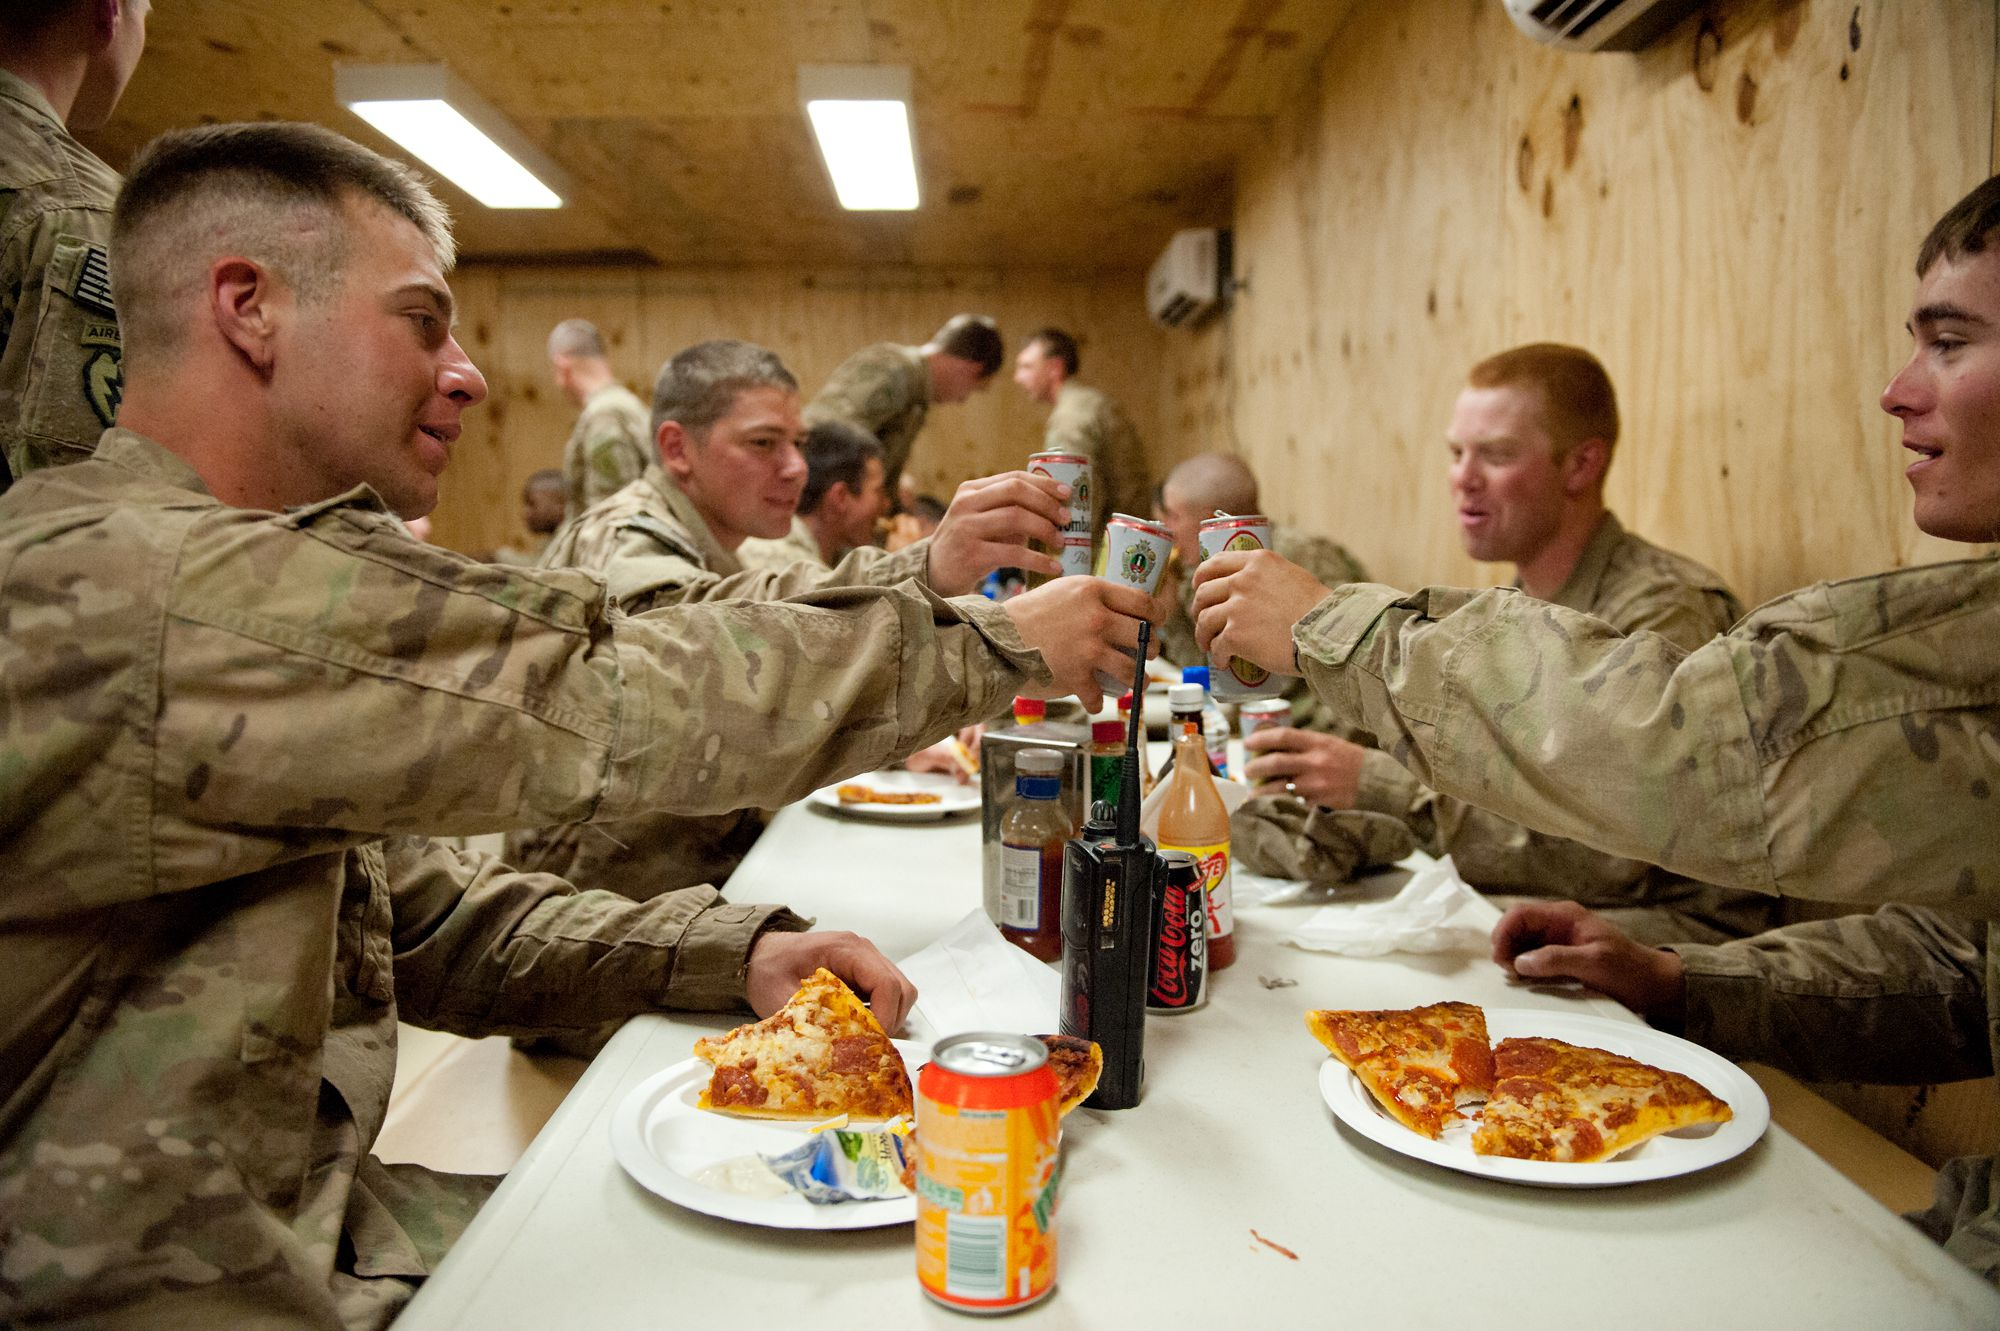 Military Enlistment Standards: Drug or Alcohol Use